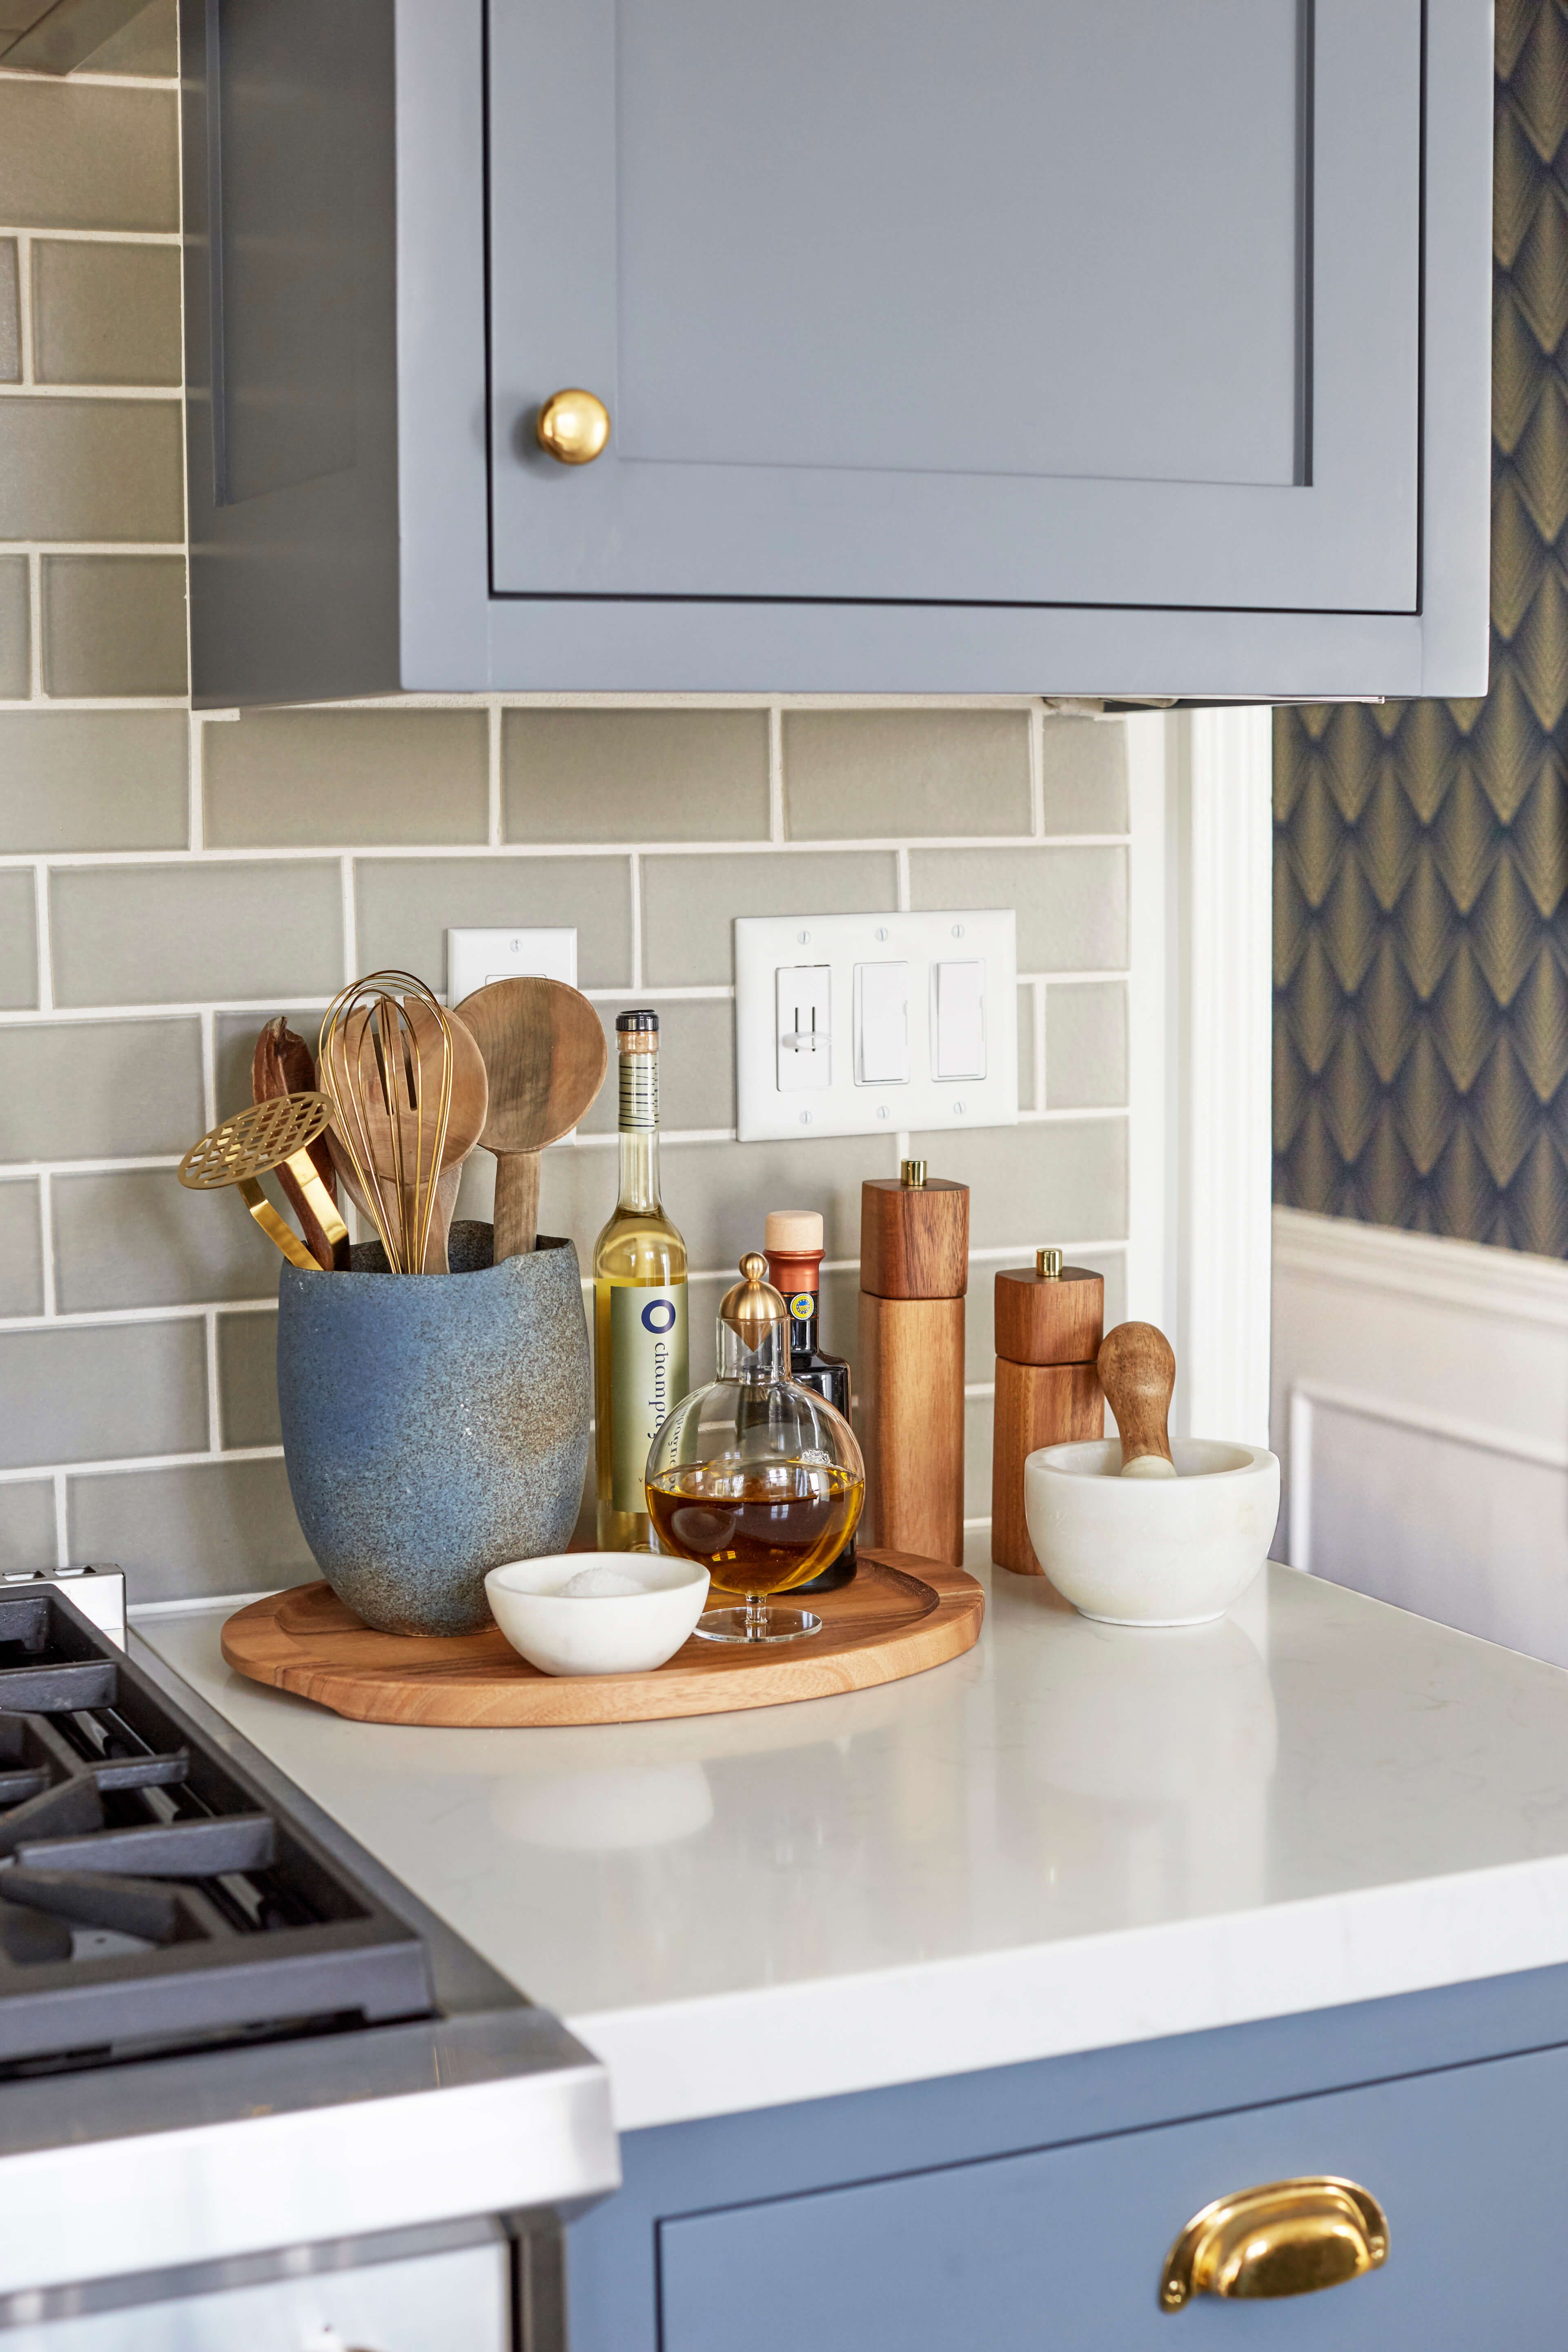 kitchen countertop decor mirrored cabinets modern deco reveal pinterest hey guys it s me ginny again bringing you a big today if tuned in week ago ll have seen our sneak peek intro to the